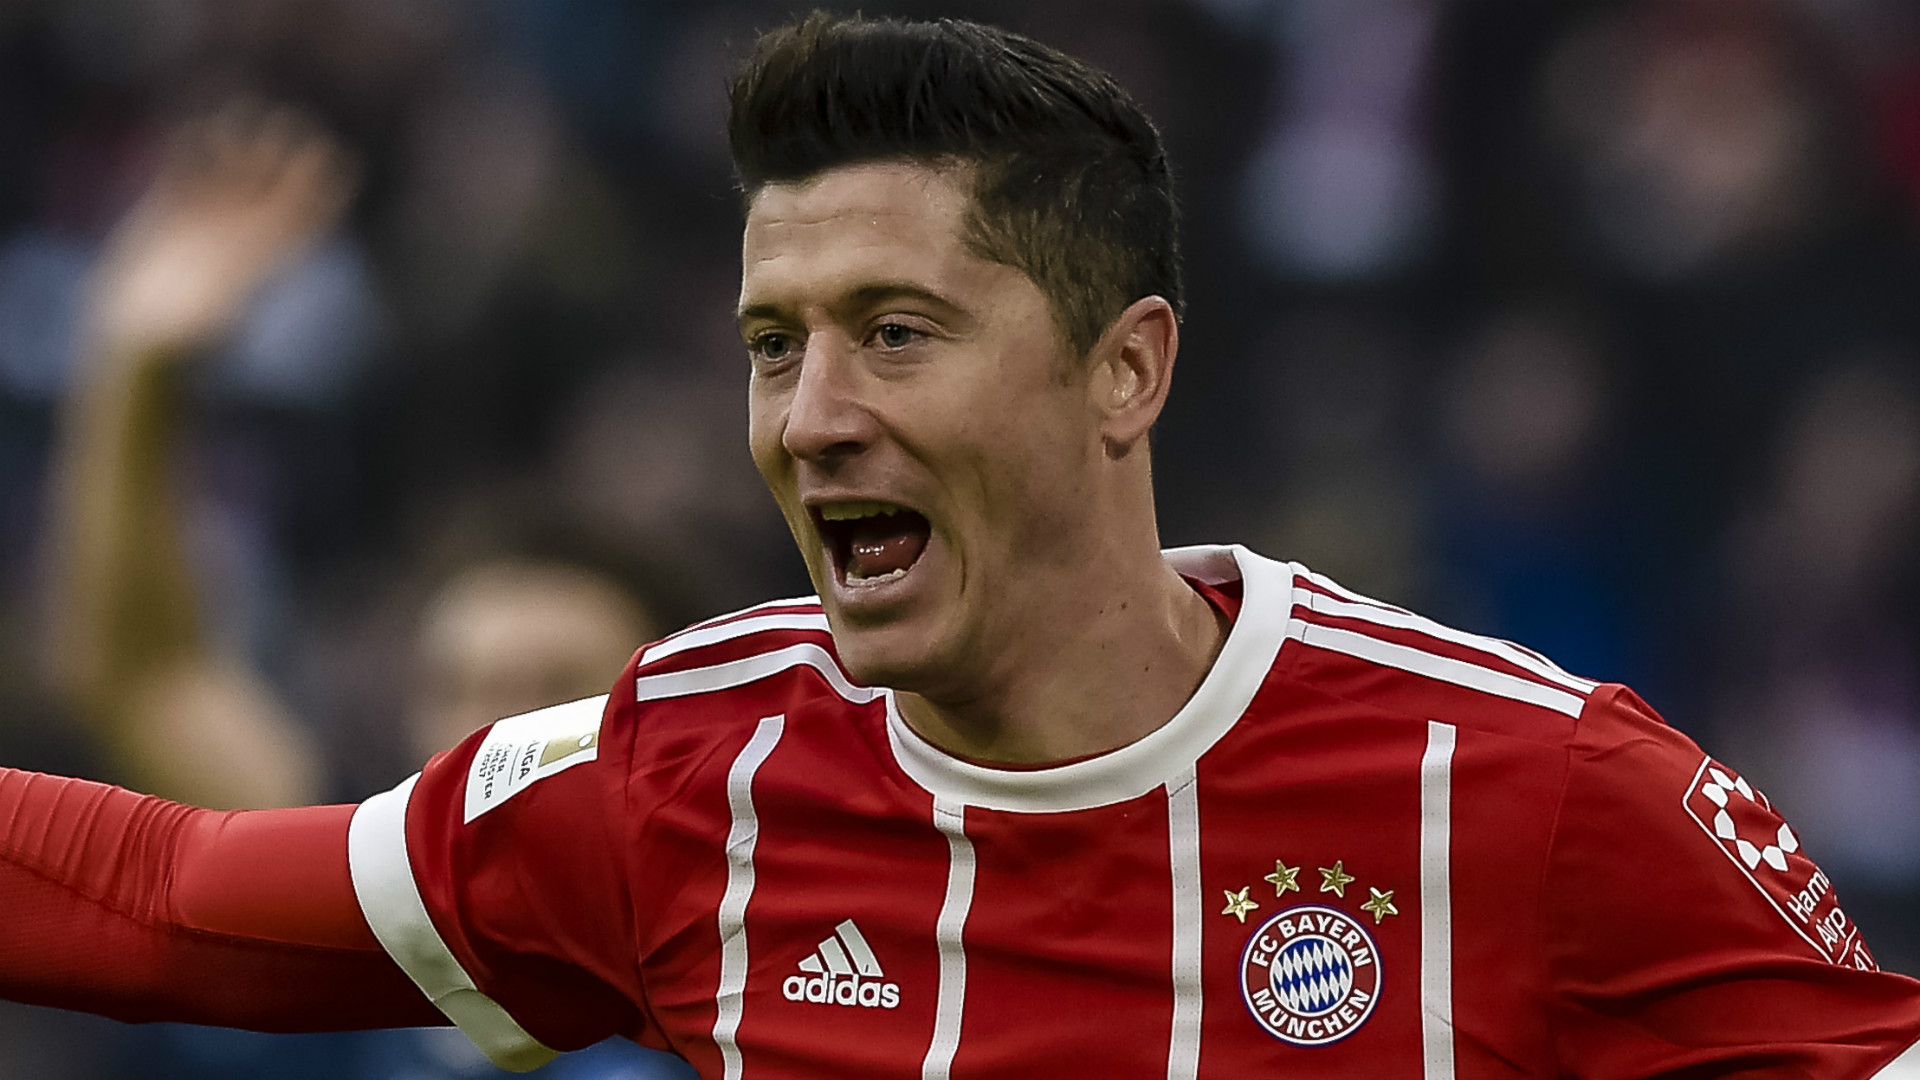 Robert Lewandowski au Real Madrid pour 150 millions d'euros — Mercato